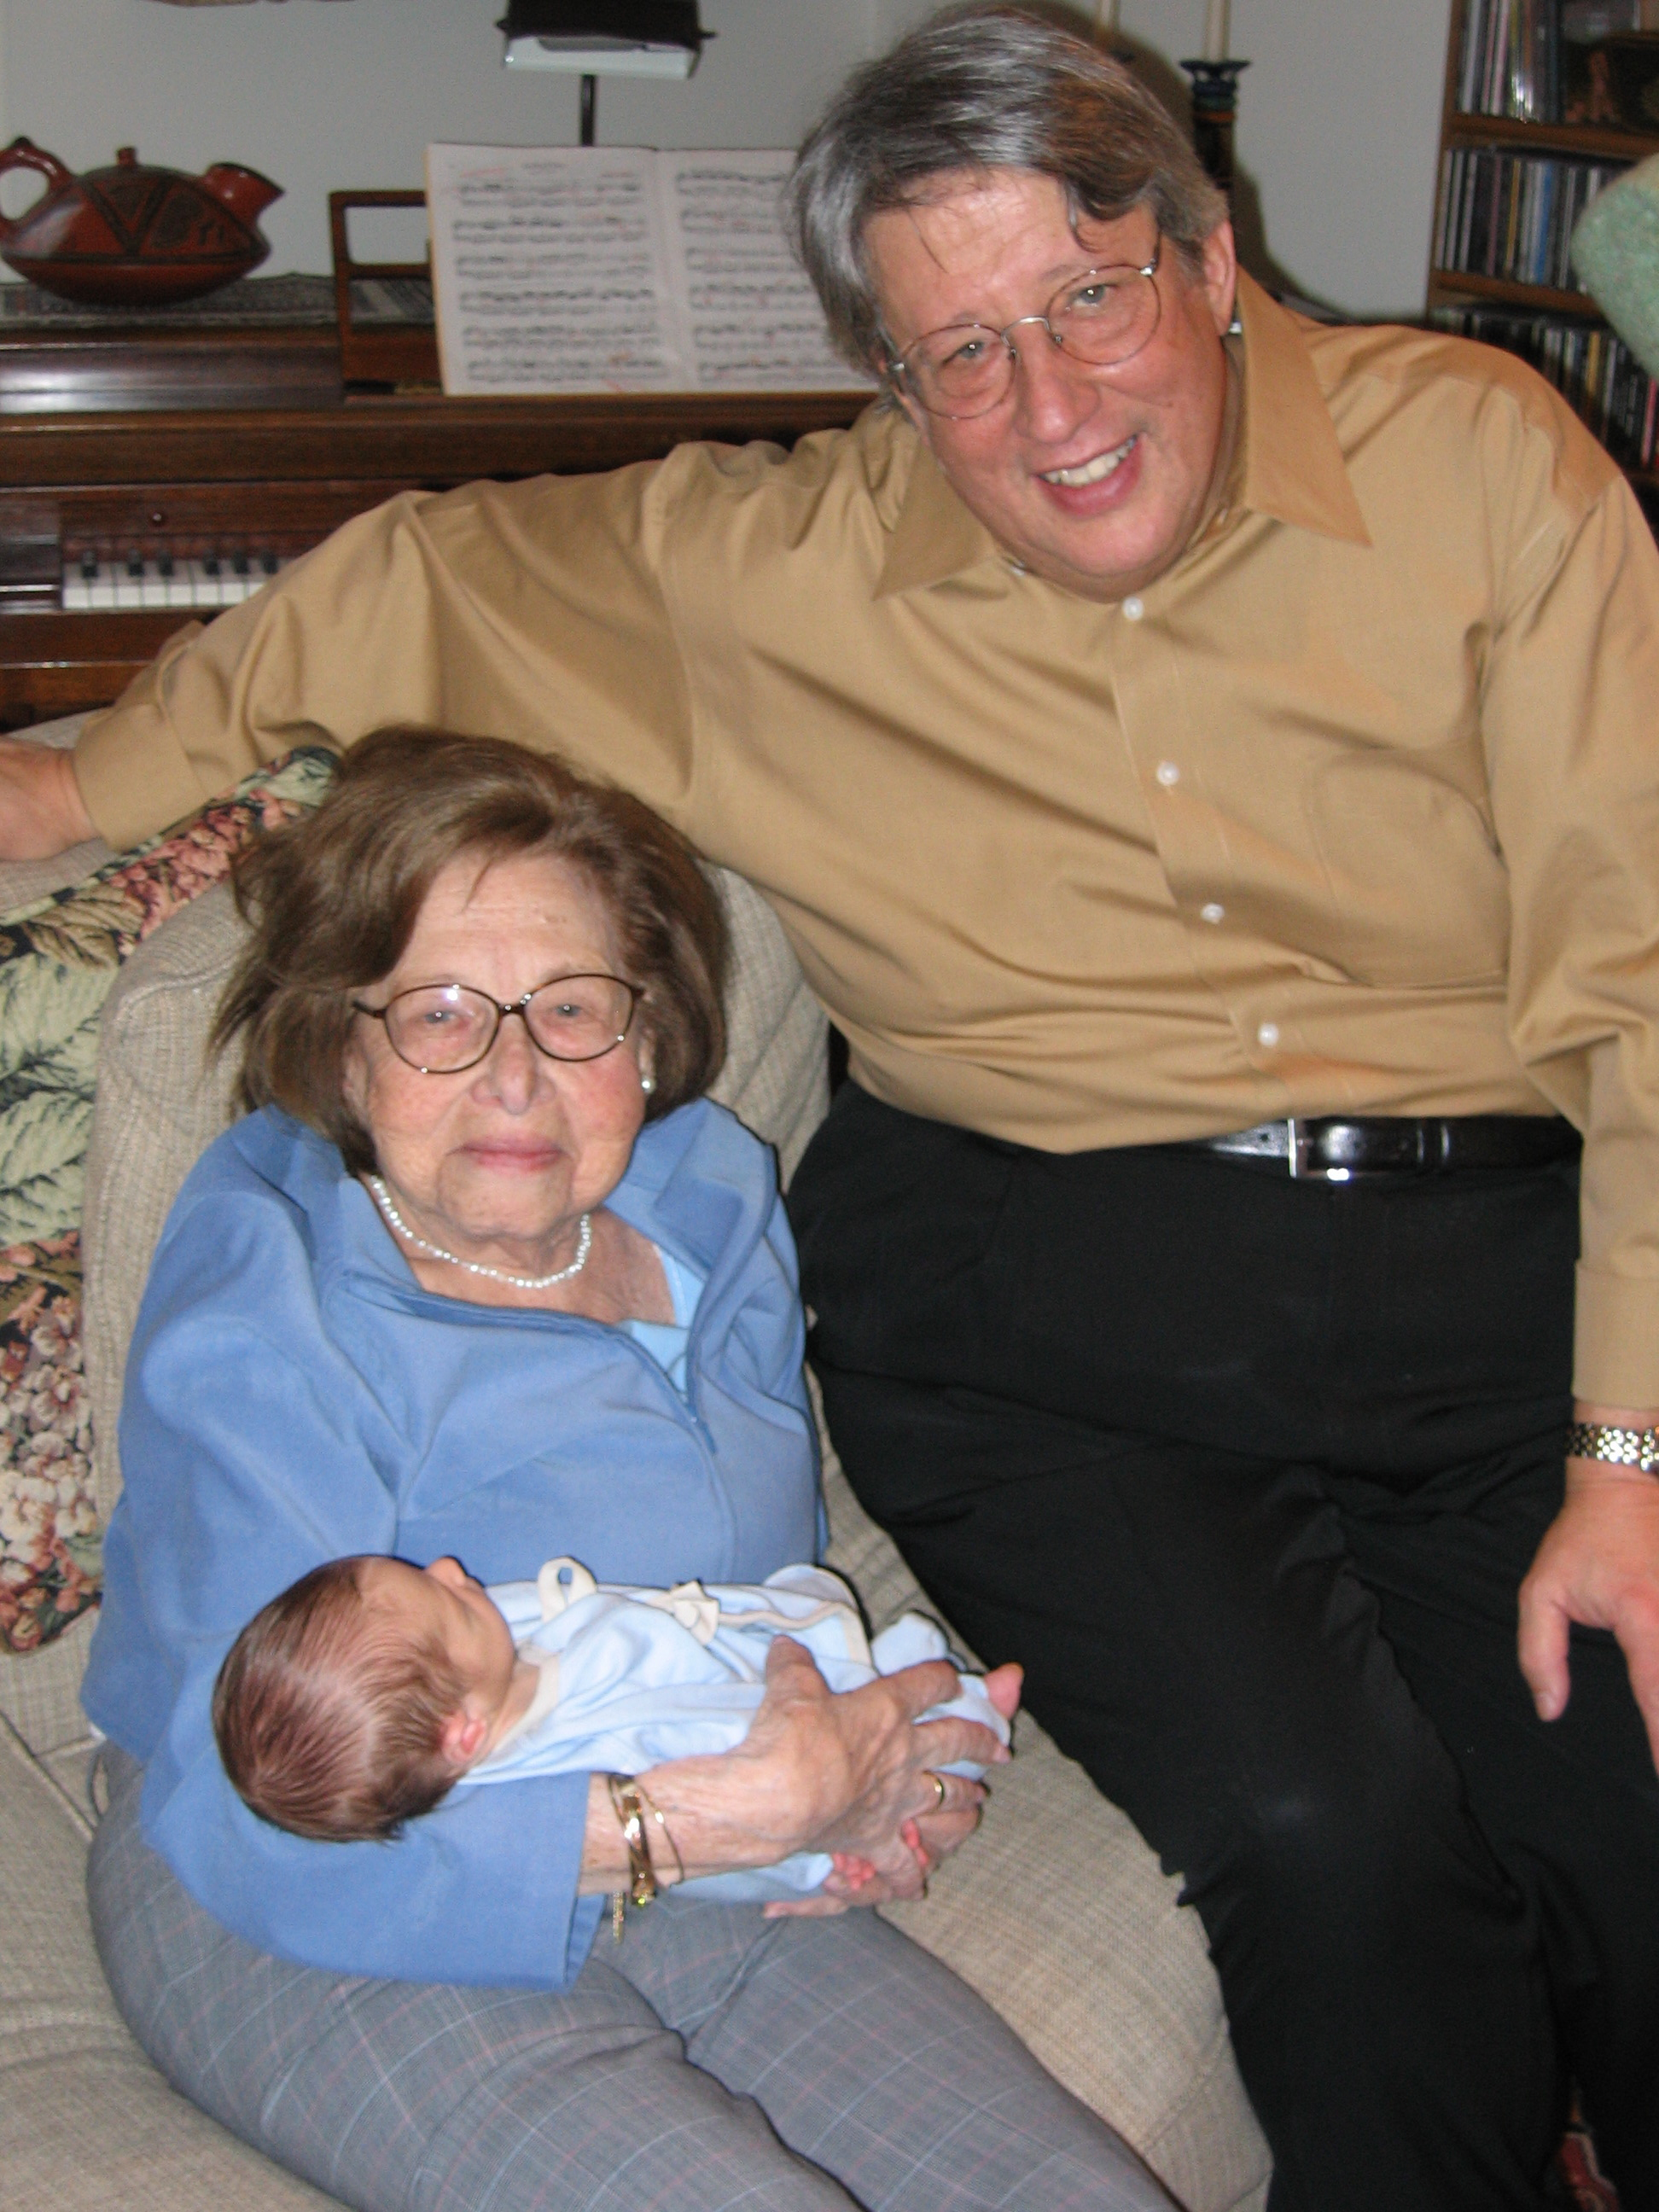 One of my favorite pictures ever - my father with his mother, Rose and my son